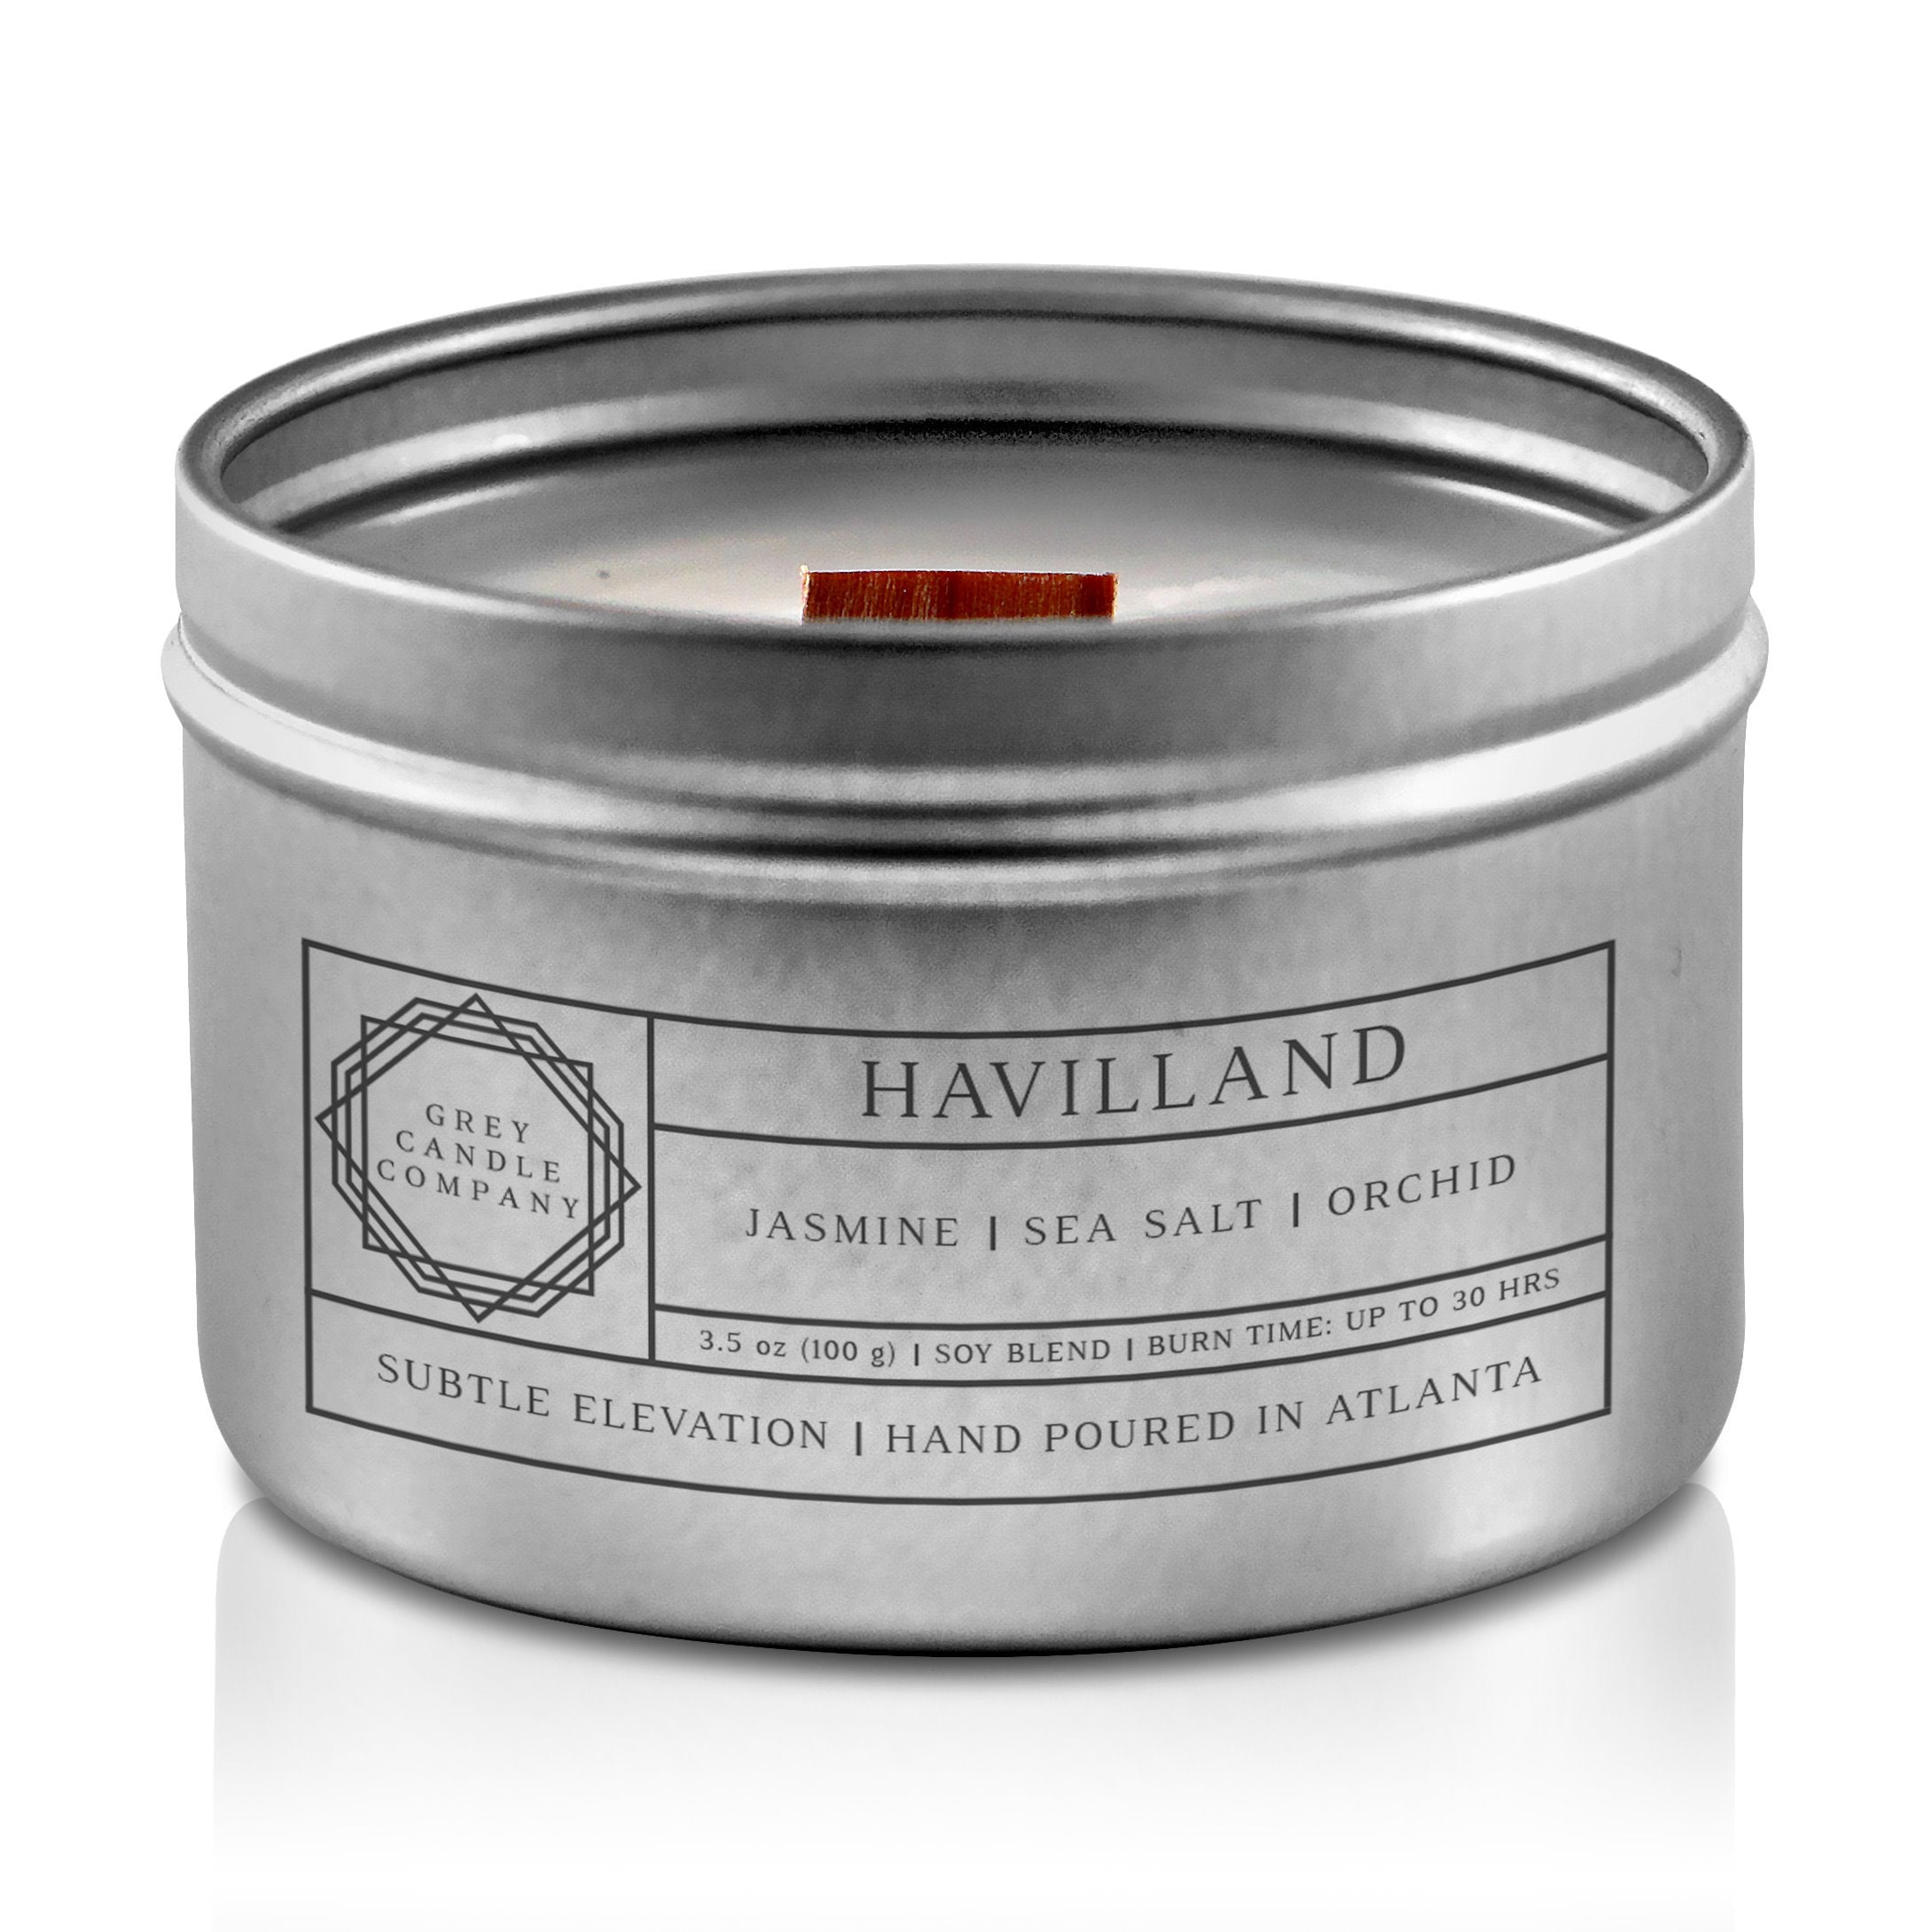 HAVILLAND CANDLES Grey Candle Company 3.5 oz. TIN